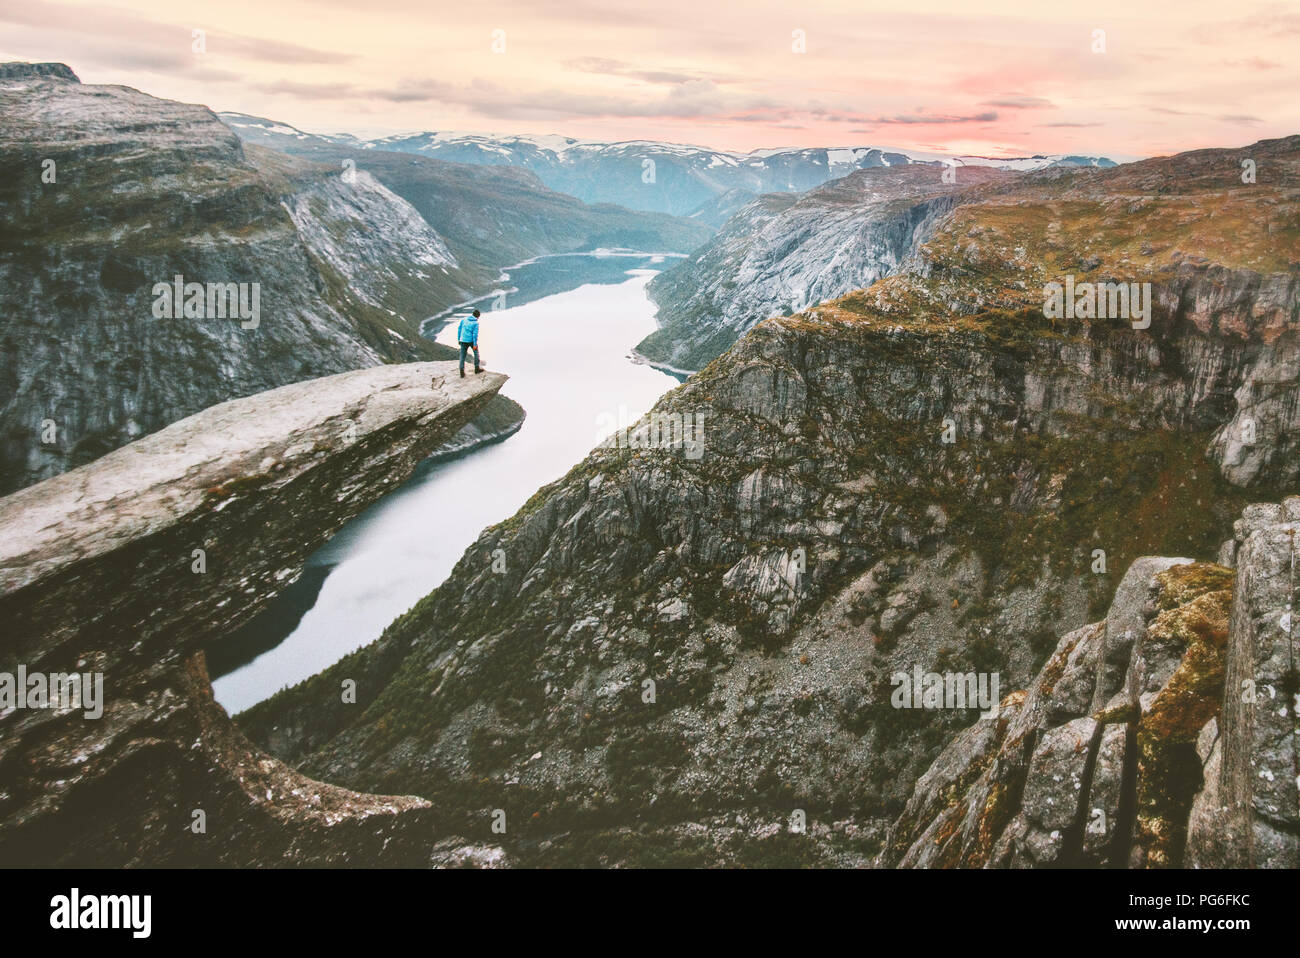 Traveler alone on the edge of Trolltunga cliff travel in Norway adventurous lifestyle extreme journey vacations outdoor  mountains over clouds landsca - Stock Image